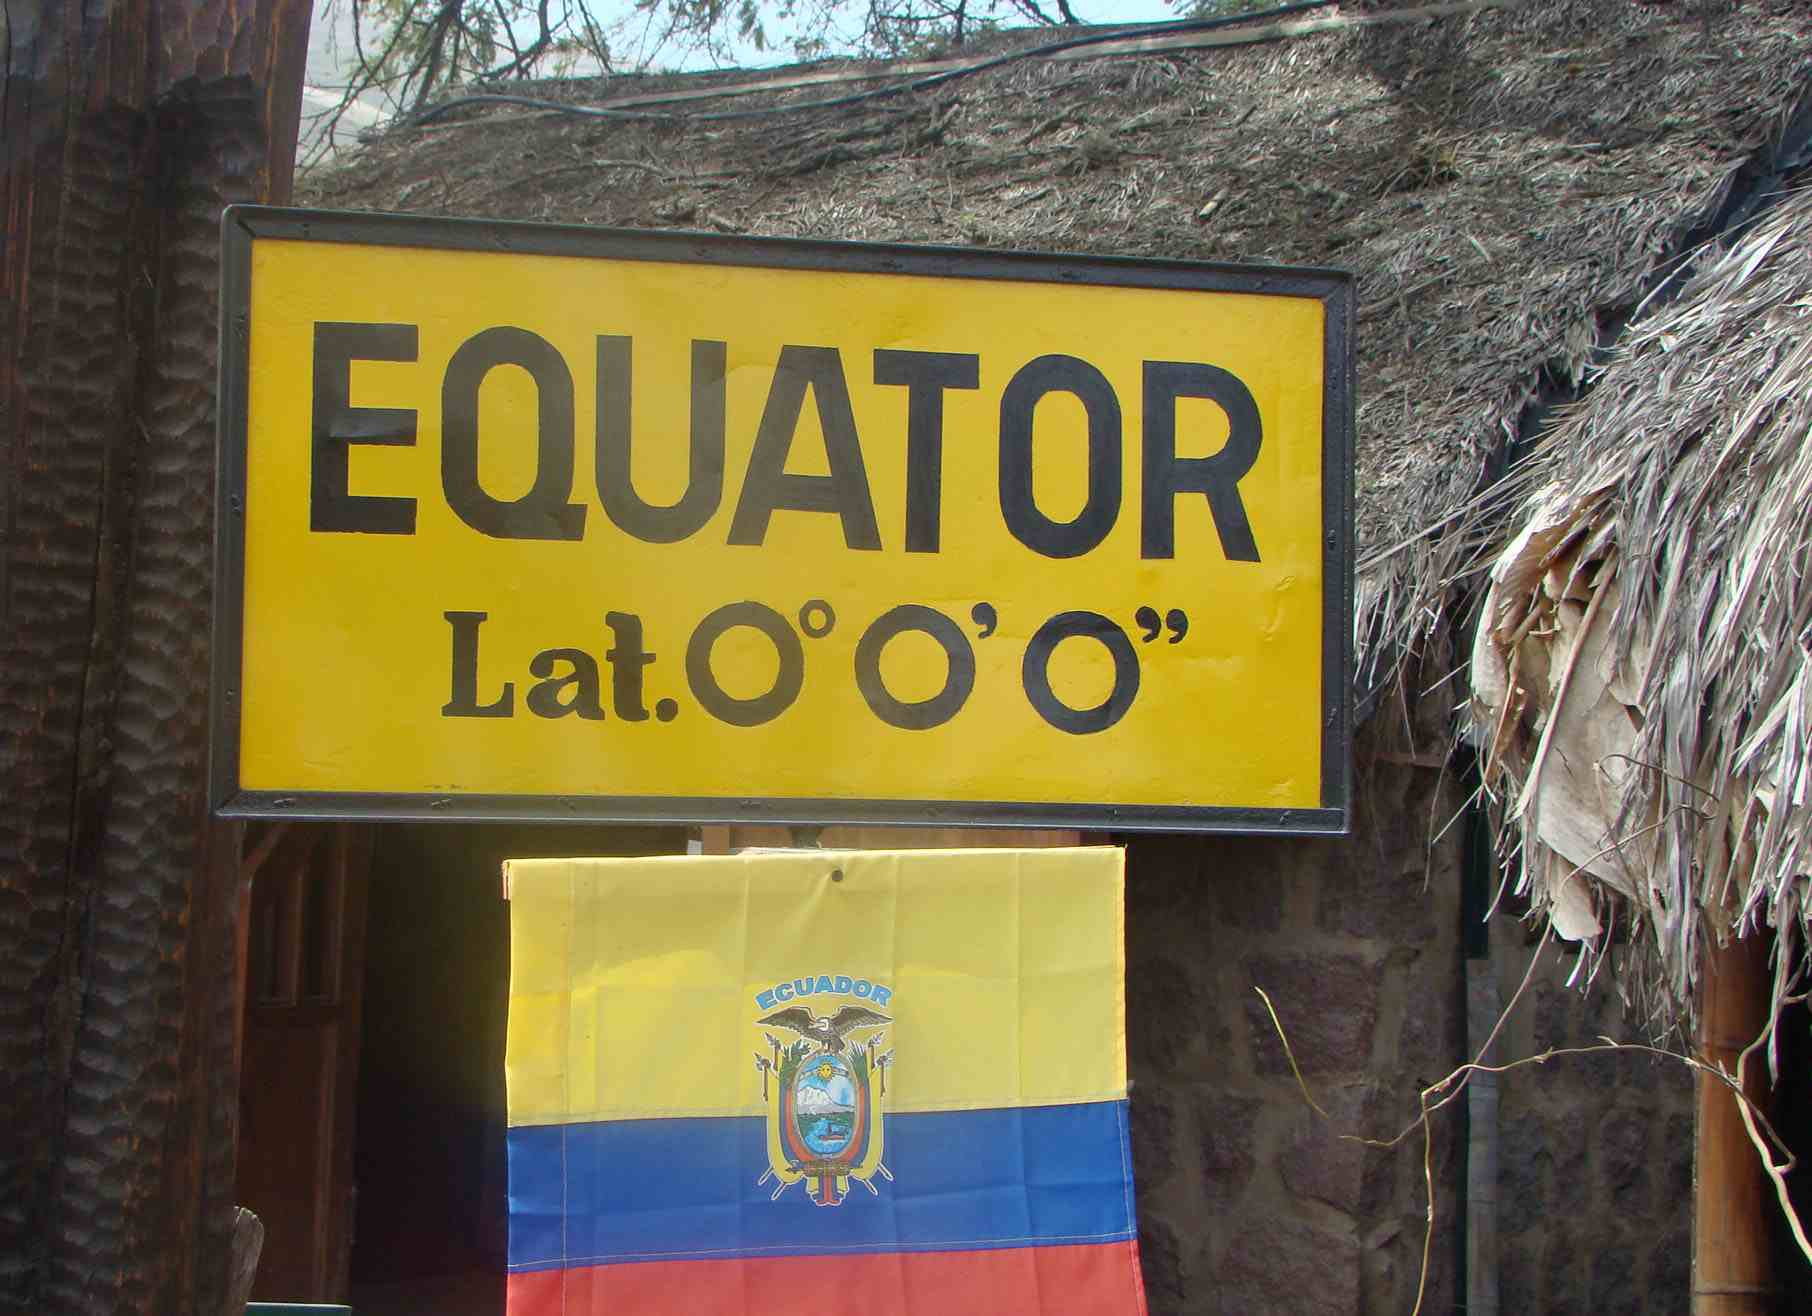 Just north of Quito, visitors stand on the equator.